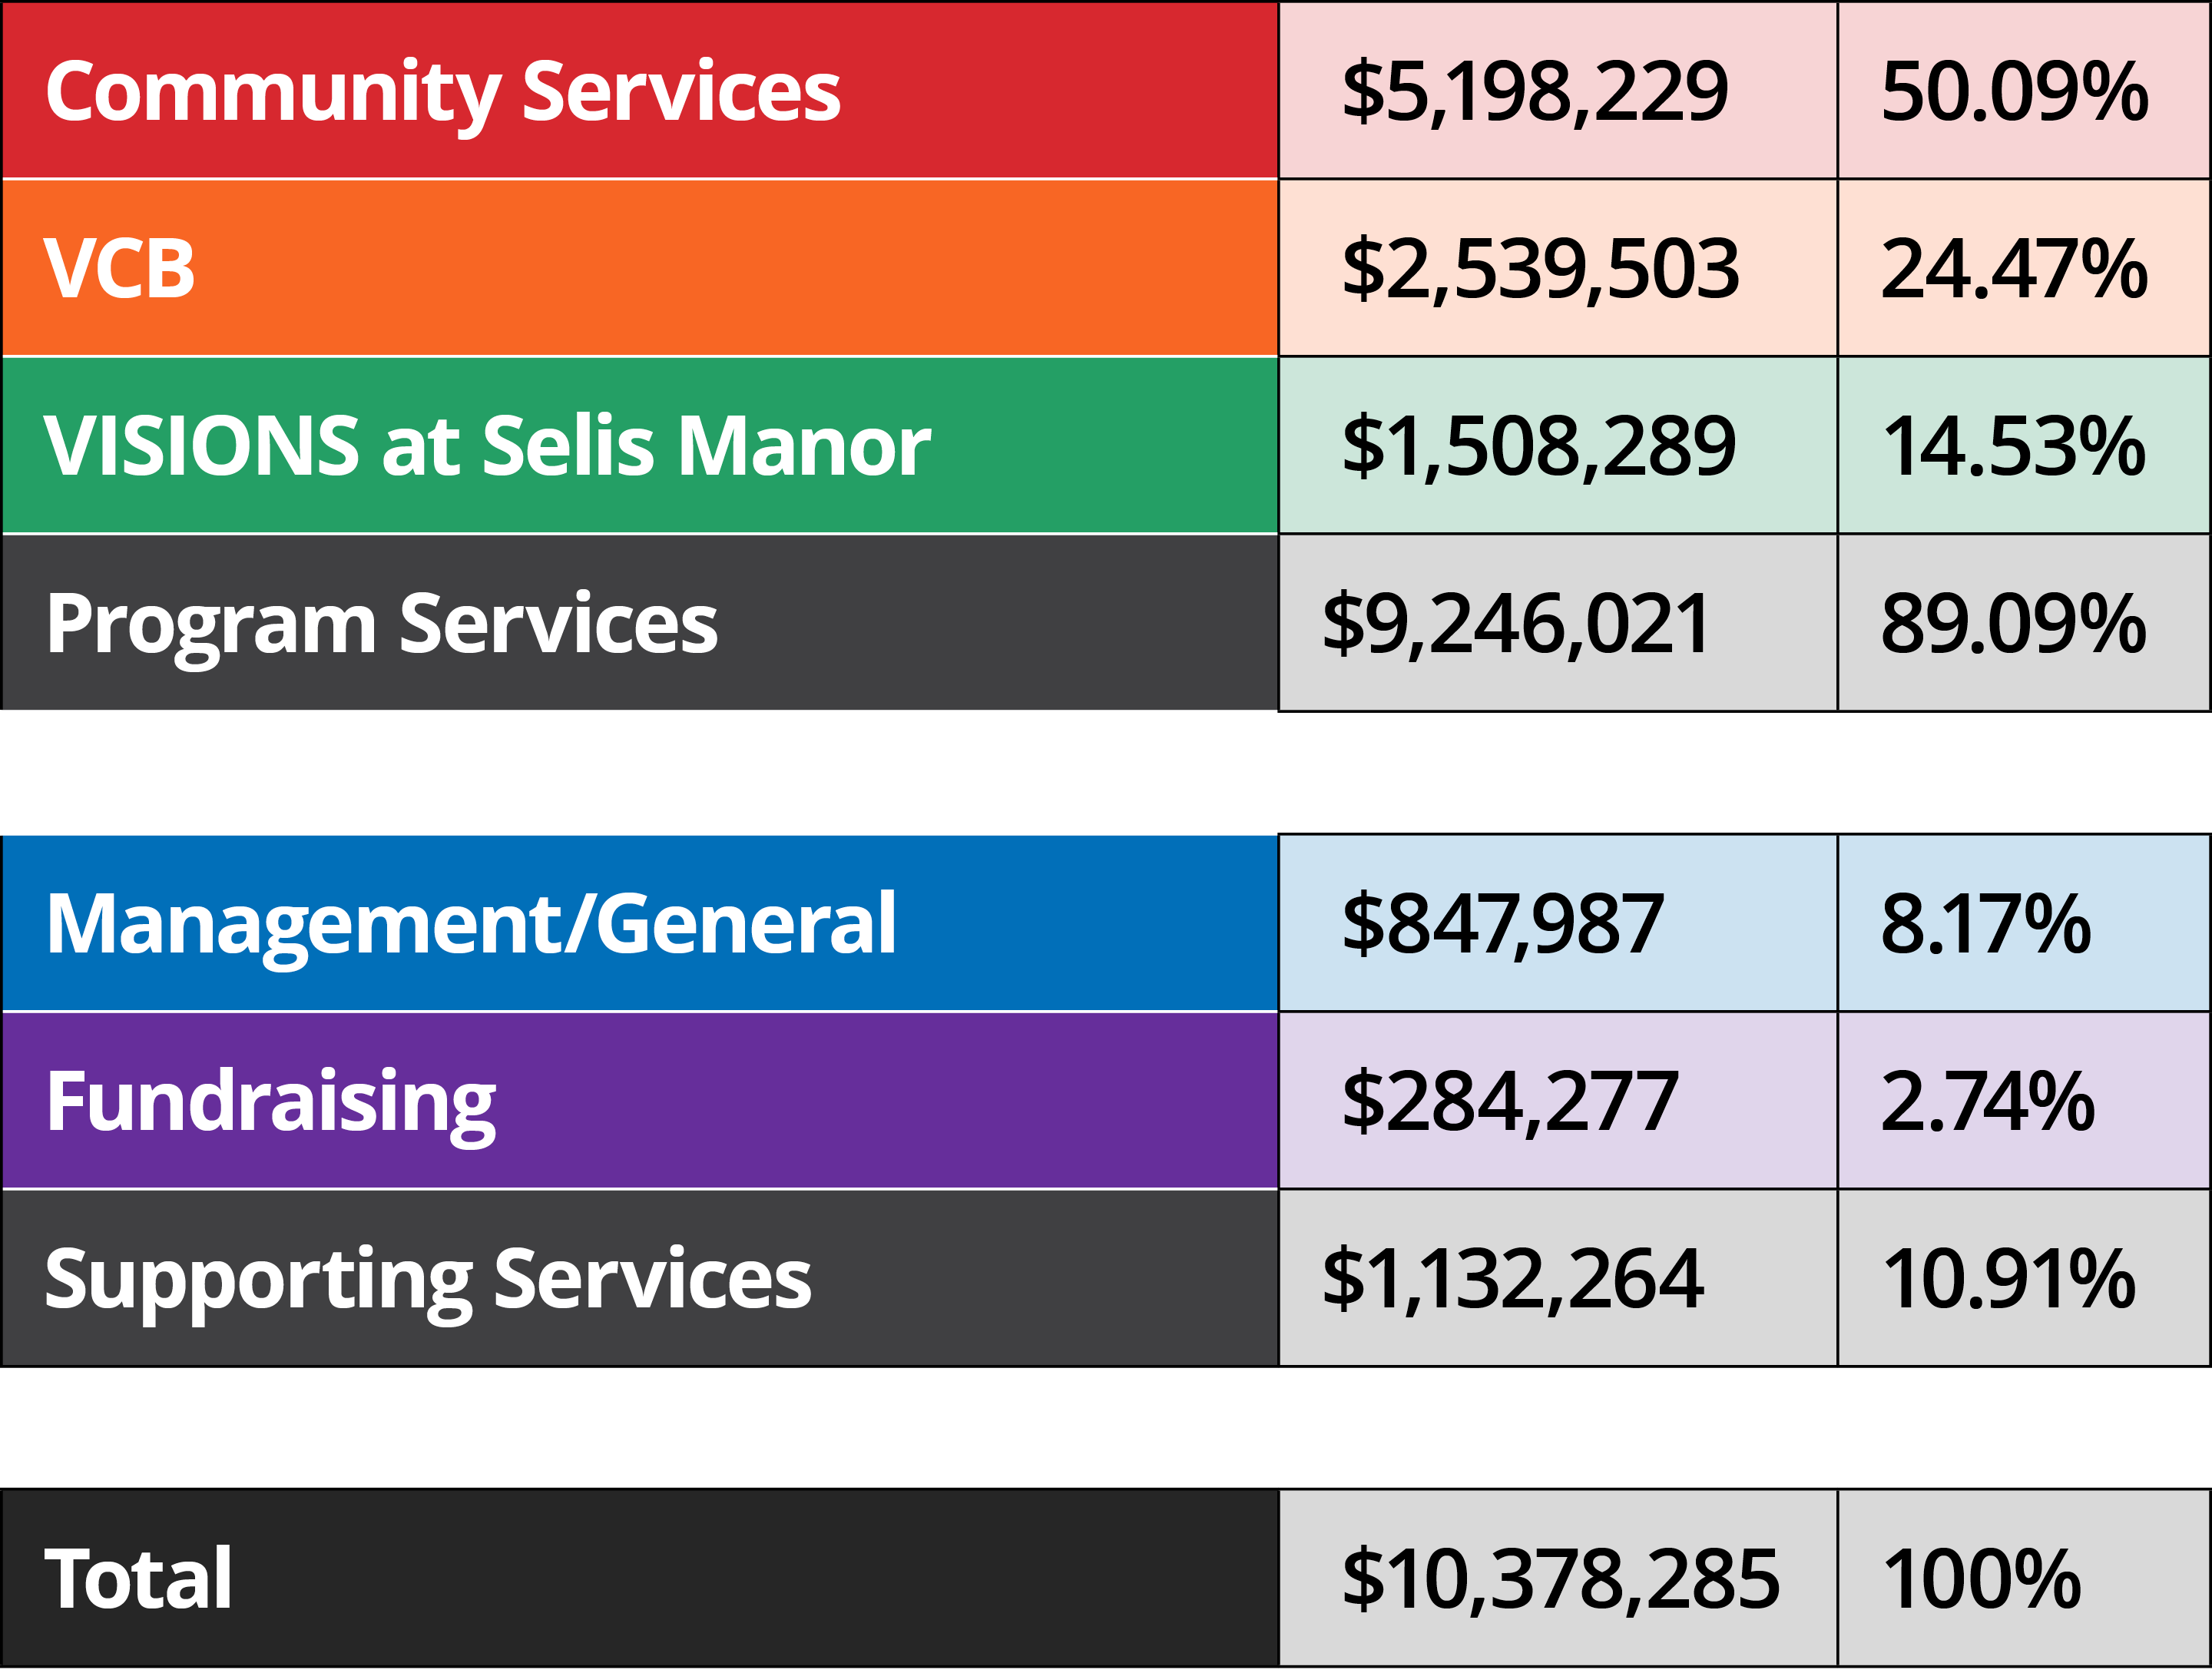 Graphic of a table outlining VISIONS expenses. From top to bottom, Community Services: 50.09%, $5,198,229. VCB: 24.47%, $2,539,503. VISIONS at Selis Manor: 14.53%, $1,508,289. Total Program Services: 89.09%. $9,246,021. Management and General, 8.17%, $847,987. Fundraising, 2.74%, $284,277. Total Supporting Services, 10.91%, $1,132,264. Total: 100%. $10,378,285